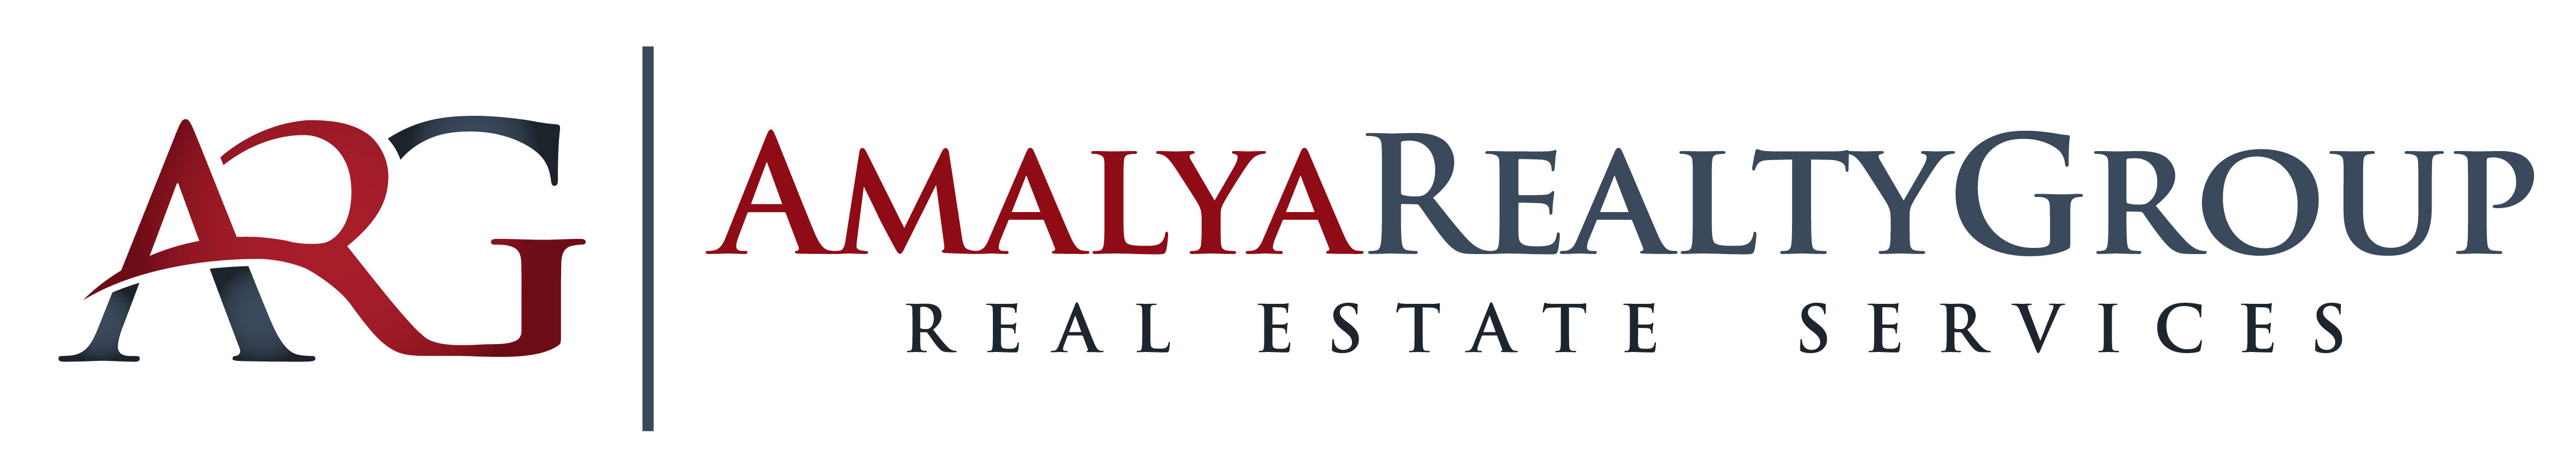 Amalya Realty Group